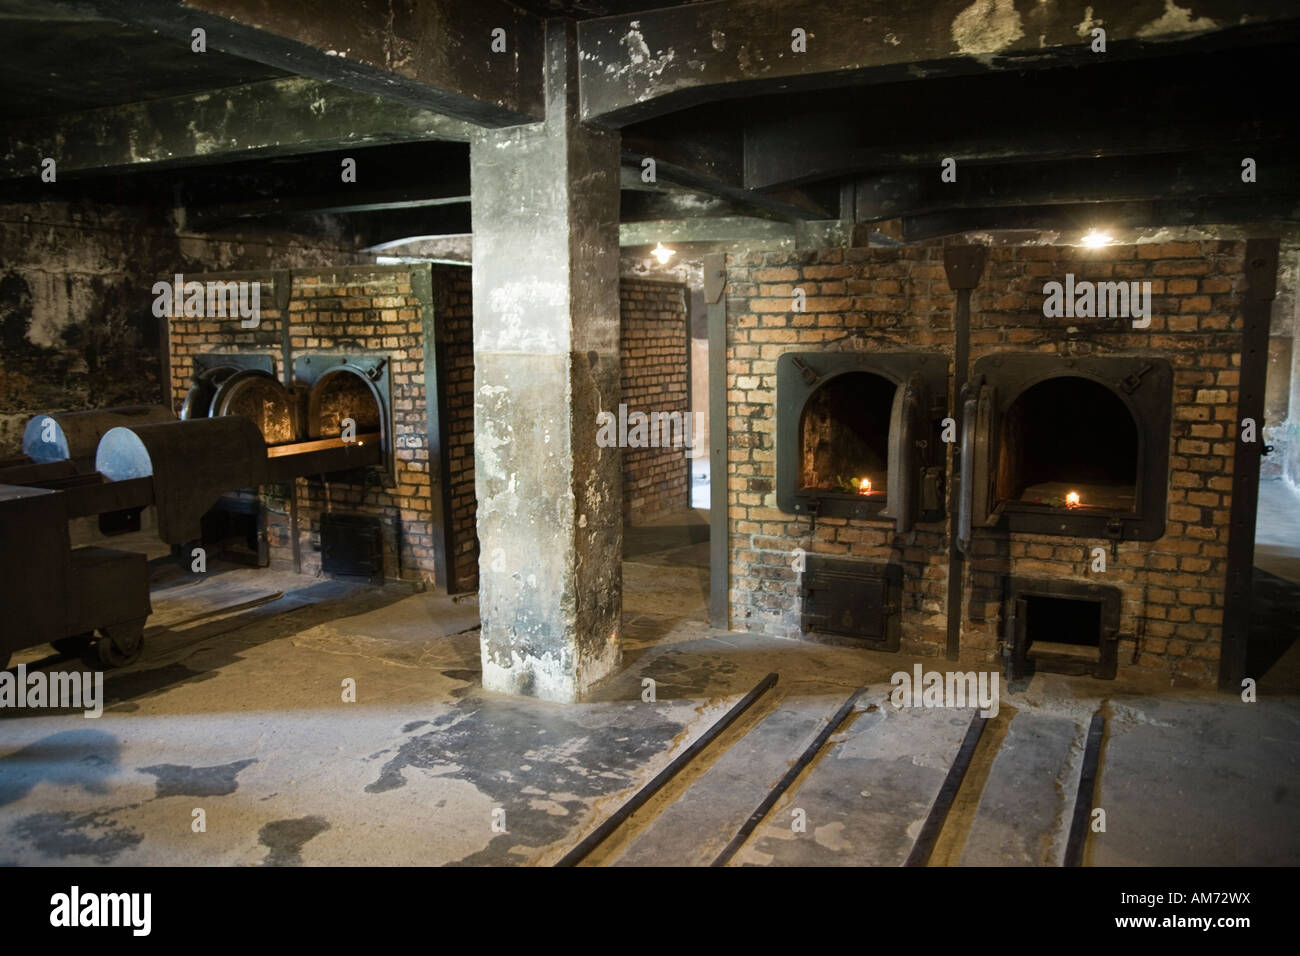 feuerbestattung fen kz auschwitz birkenau stockfoto bild 15169813 alamy. Black Bedroom Furniture Sets. Home Design Ideas